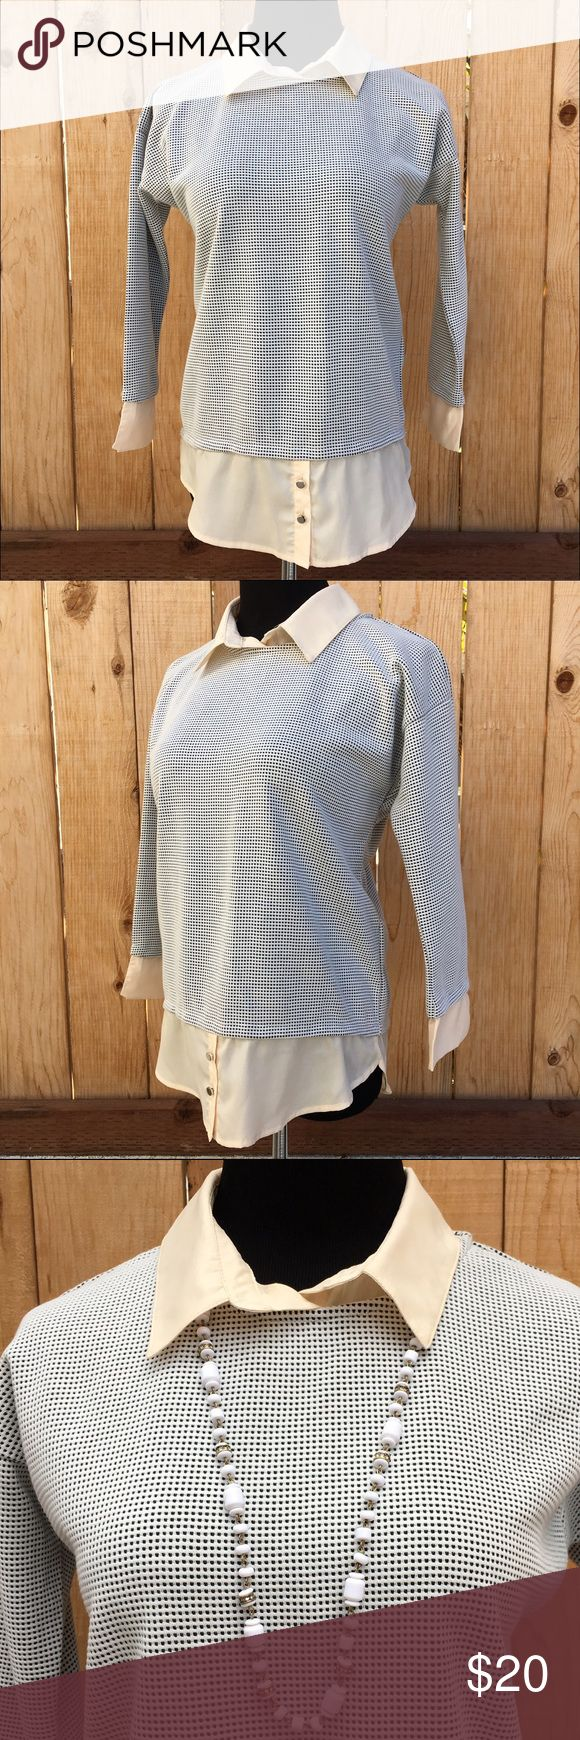 🆕🎁 Long sleeve Pull Over Top One piece long sleeve pull over top. Pull over scoop neck has been dressed up with a light weight cream 100% polyester material; attached collar, cuffs & extra length in front & back. Two buttons are added to back neck area as shown in photo. In excellent new condition. NWT price cut was $20. Miroa Tops